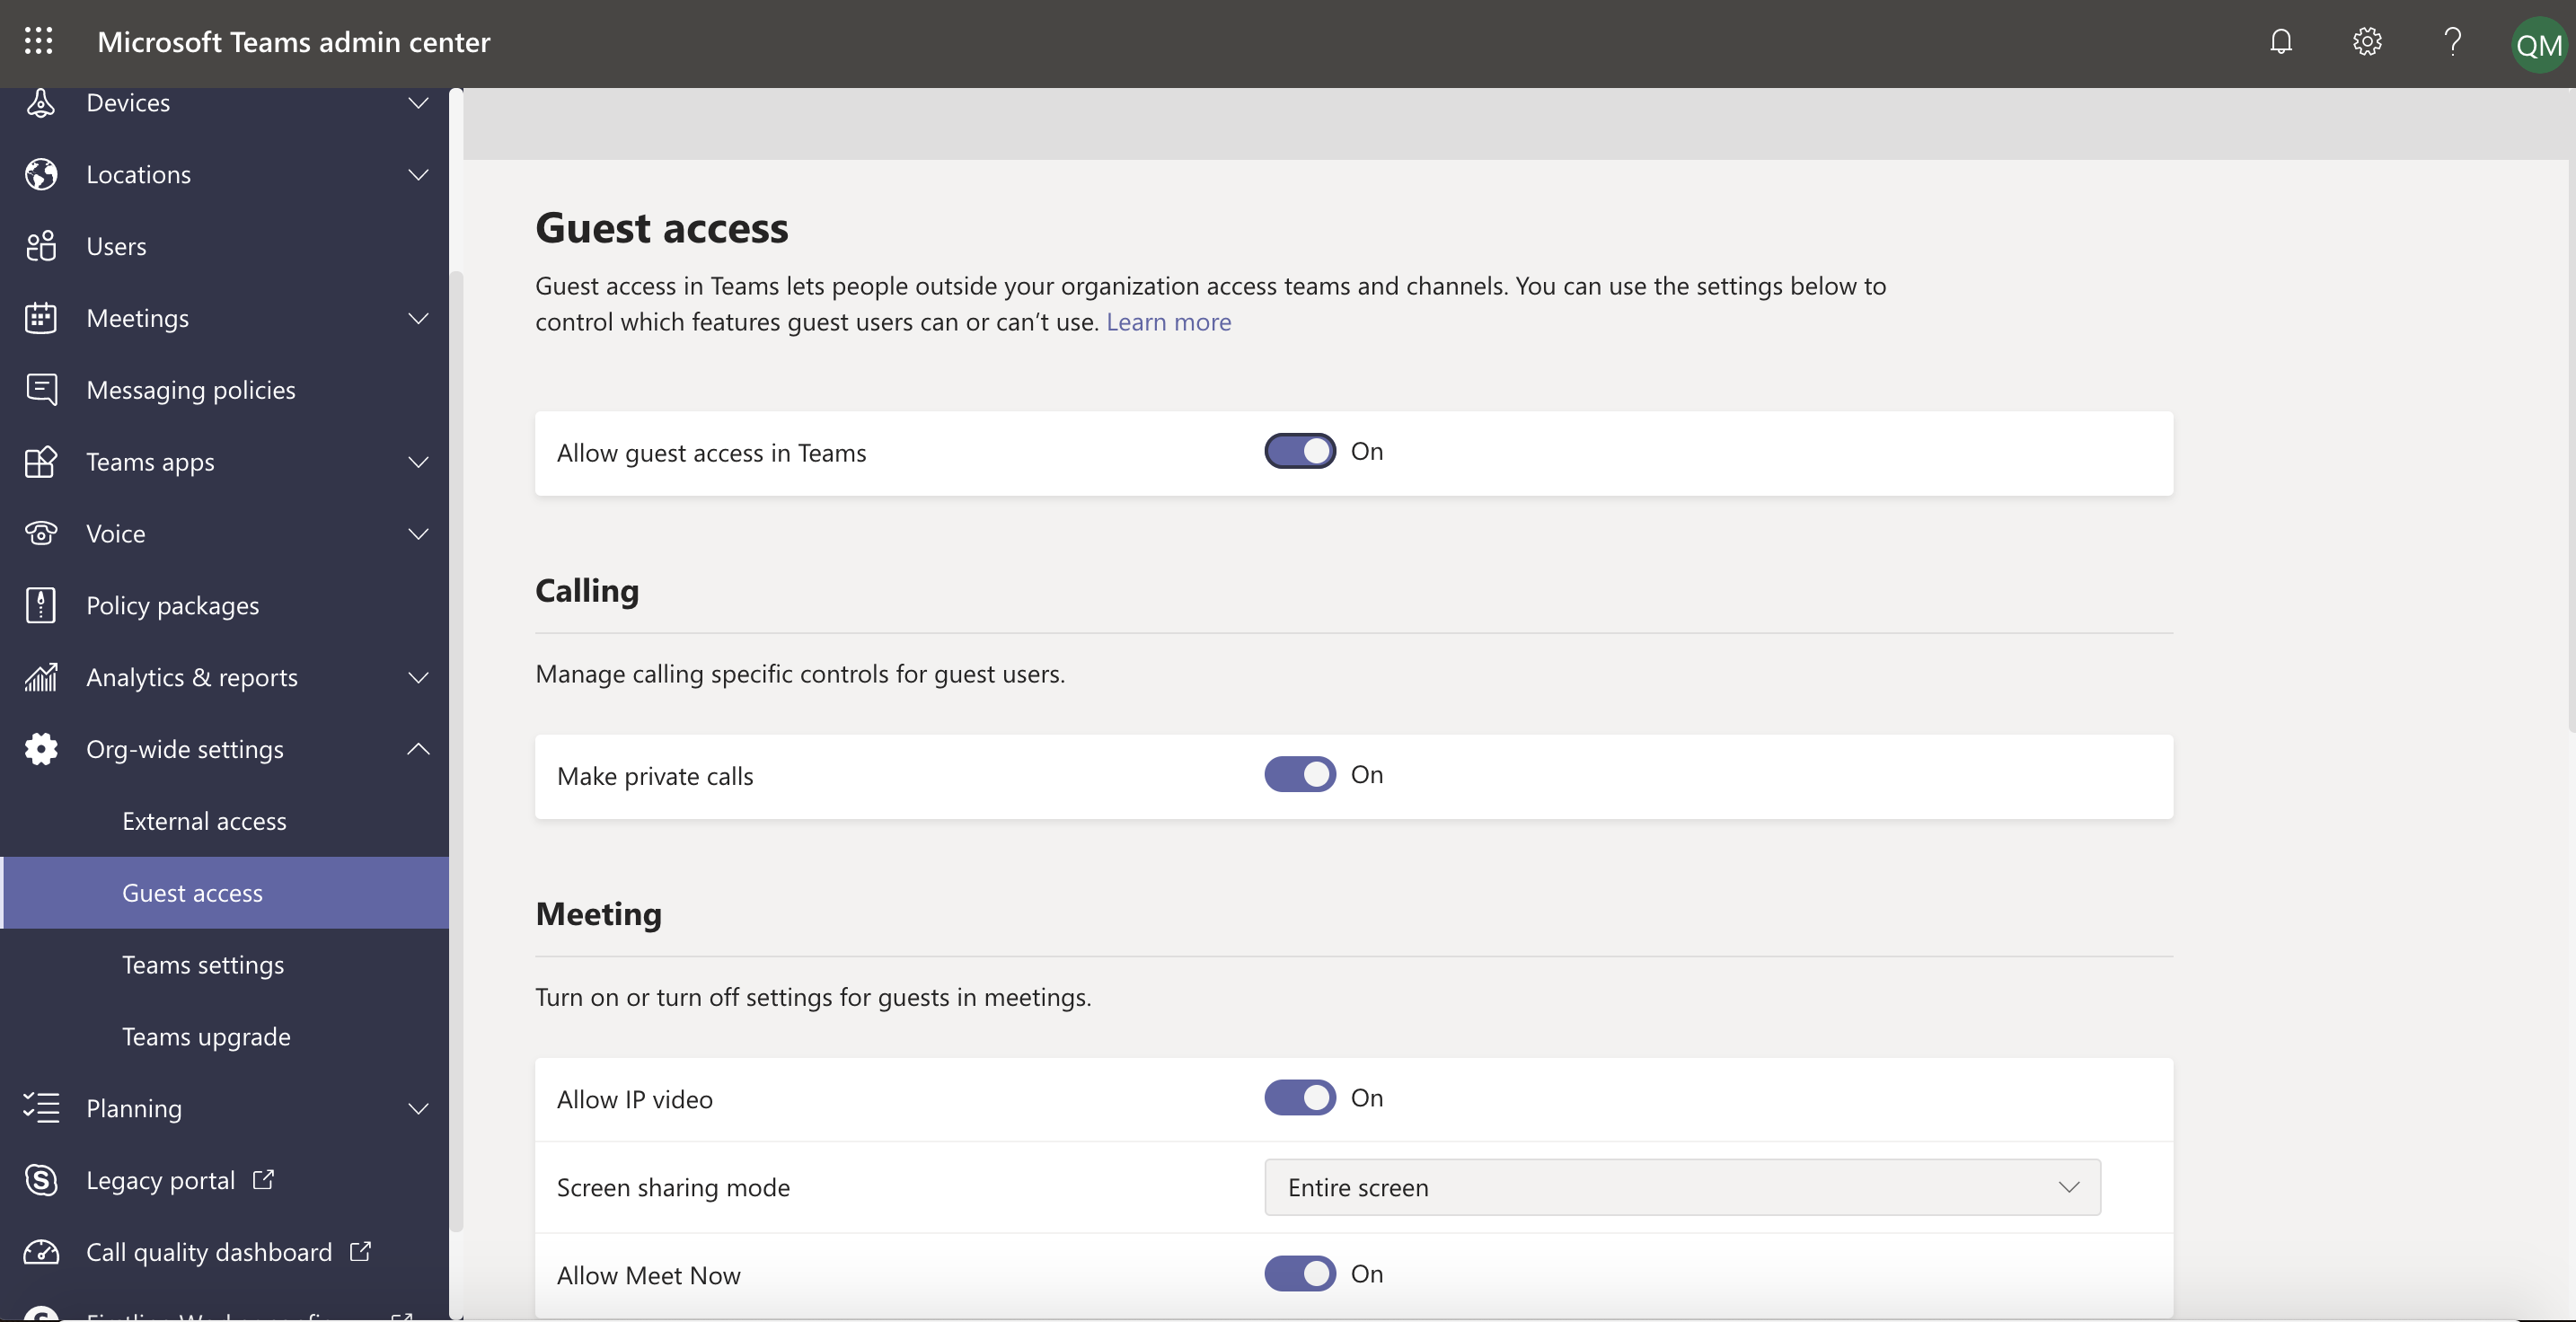 Guest access Org-wide settings in Teams admin center.